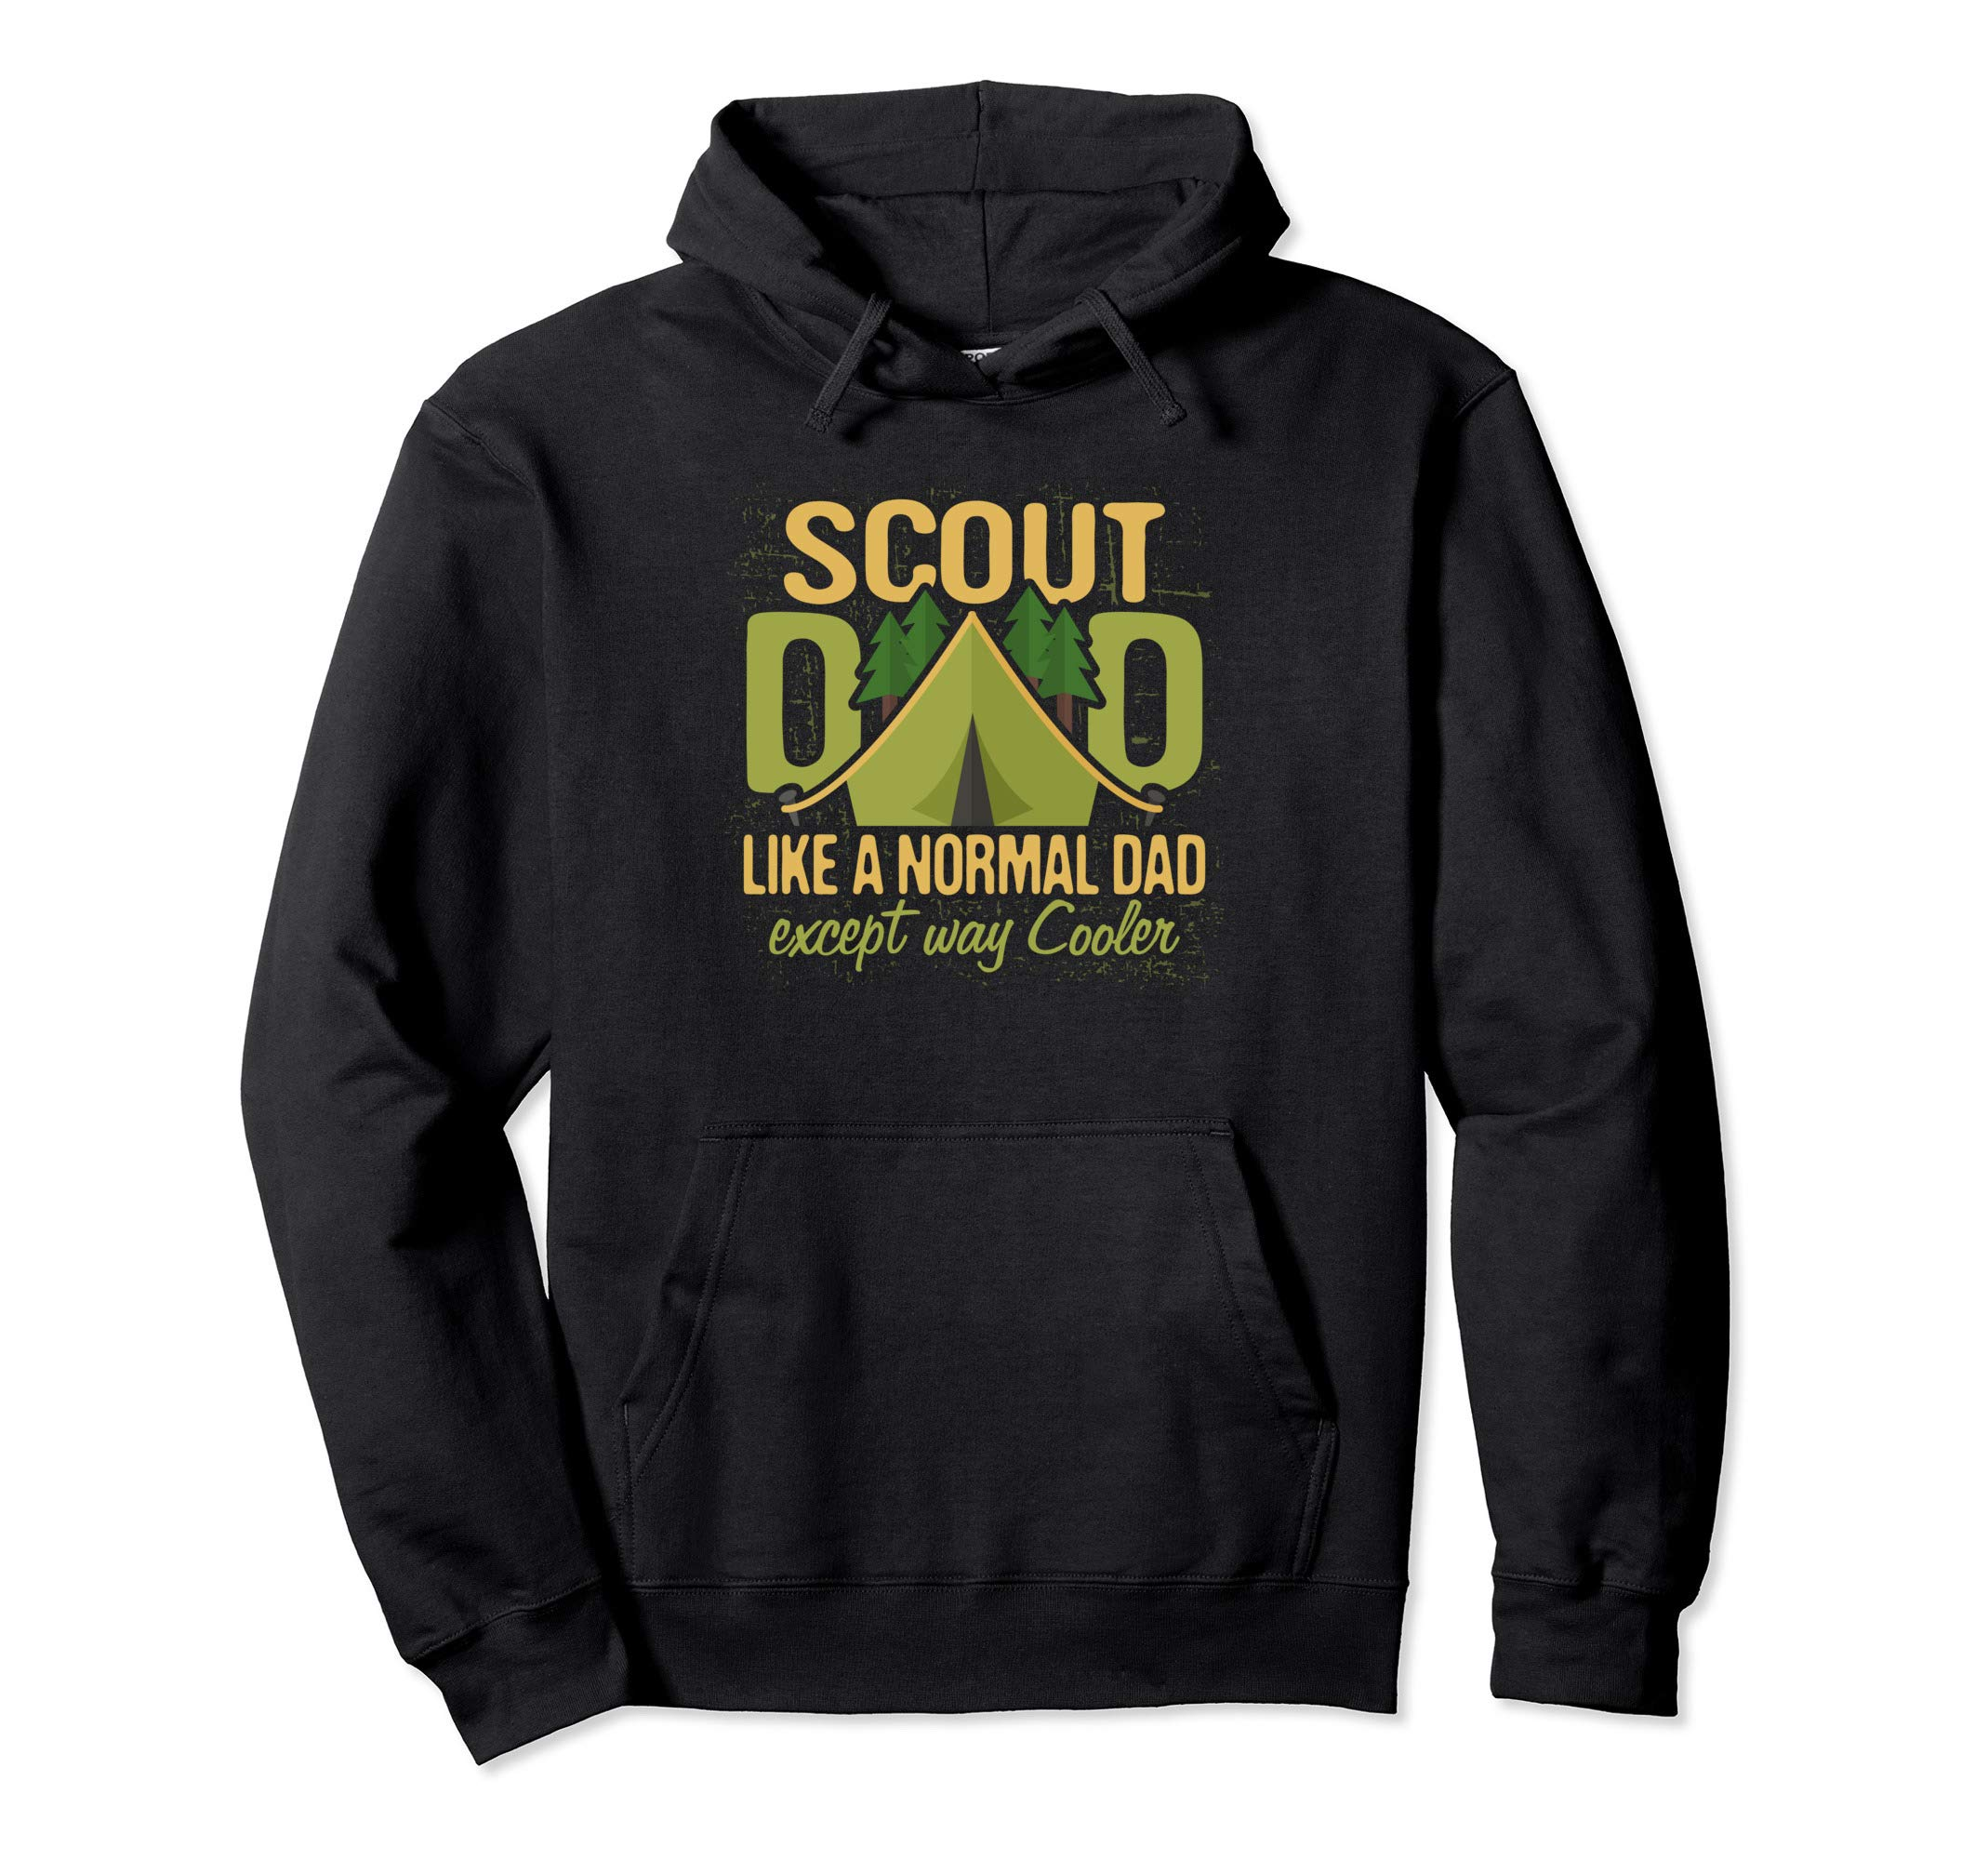 Scout Dad Cub Leader Boy Camping Scouting Troop Den Gift Men Pullover Hoodie by Scouting Shirts By Ark